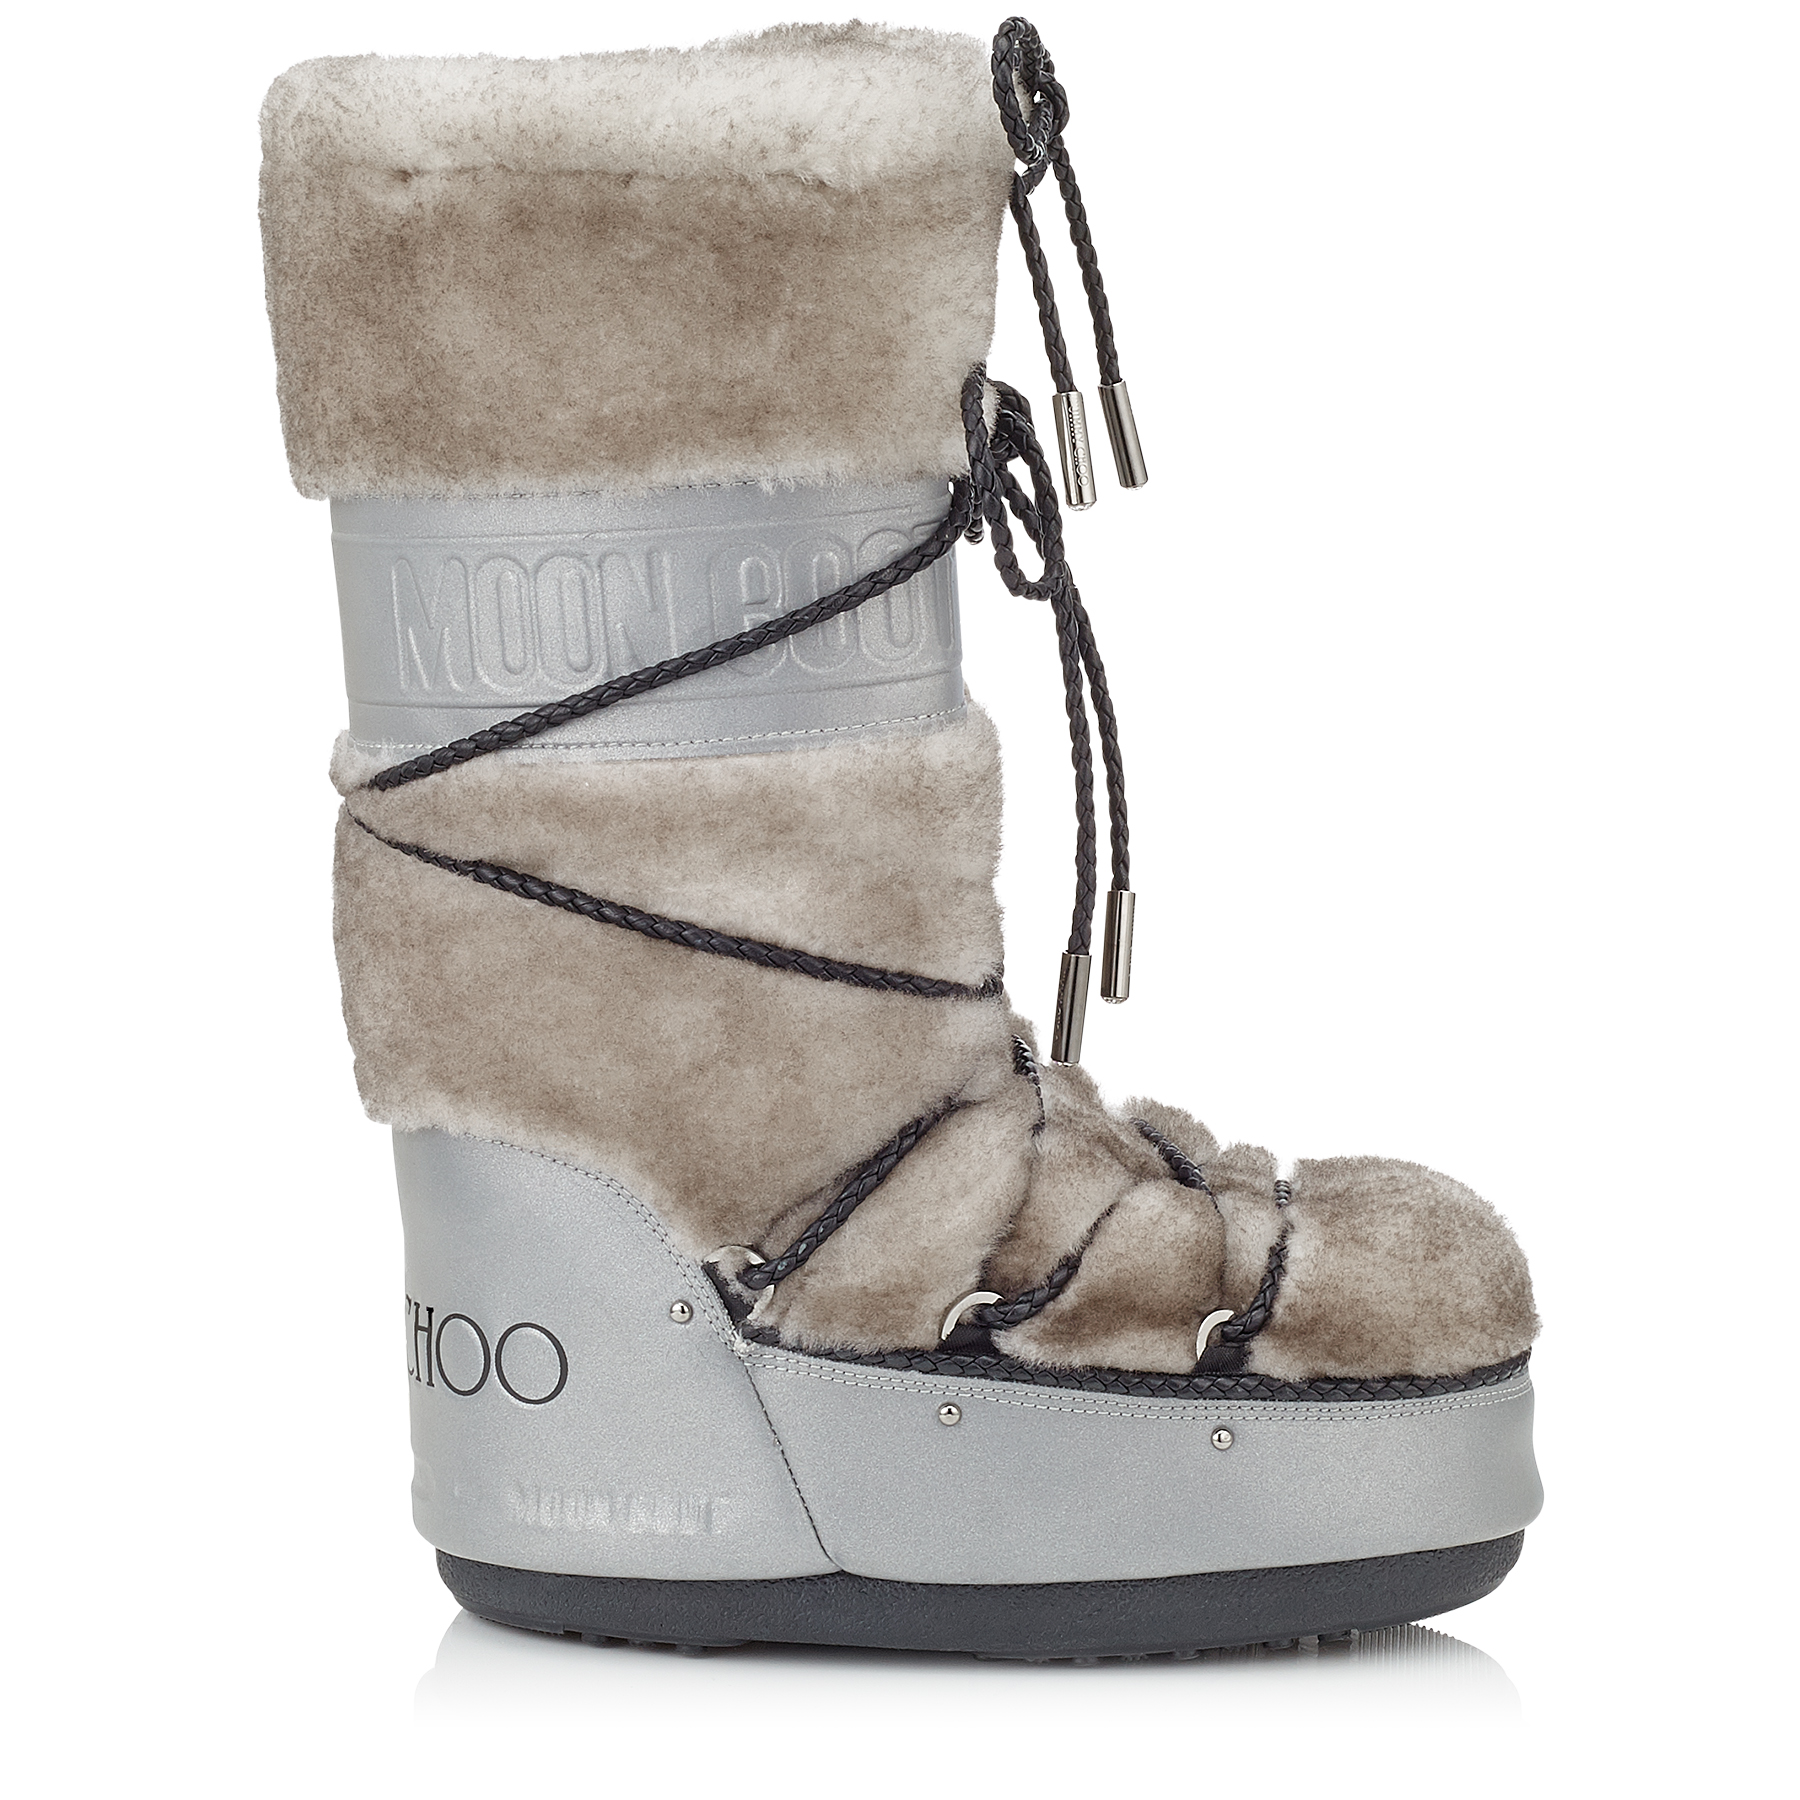 MB CLASSIC Silver Reflective Fabric and White Shearling Moon Boot®